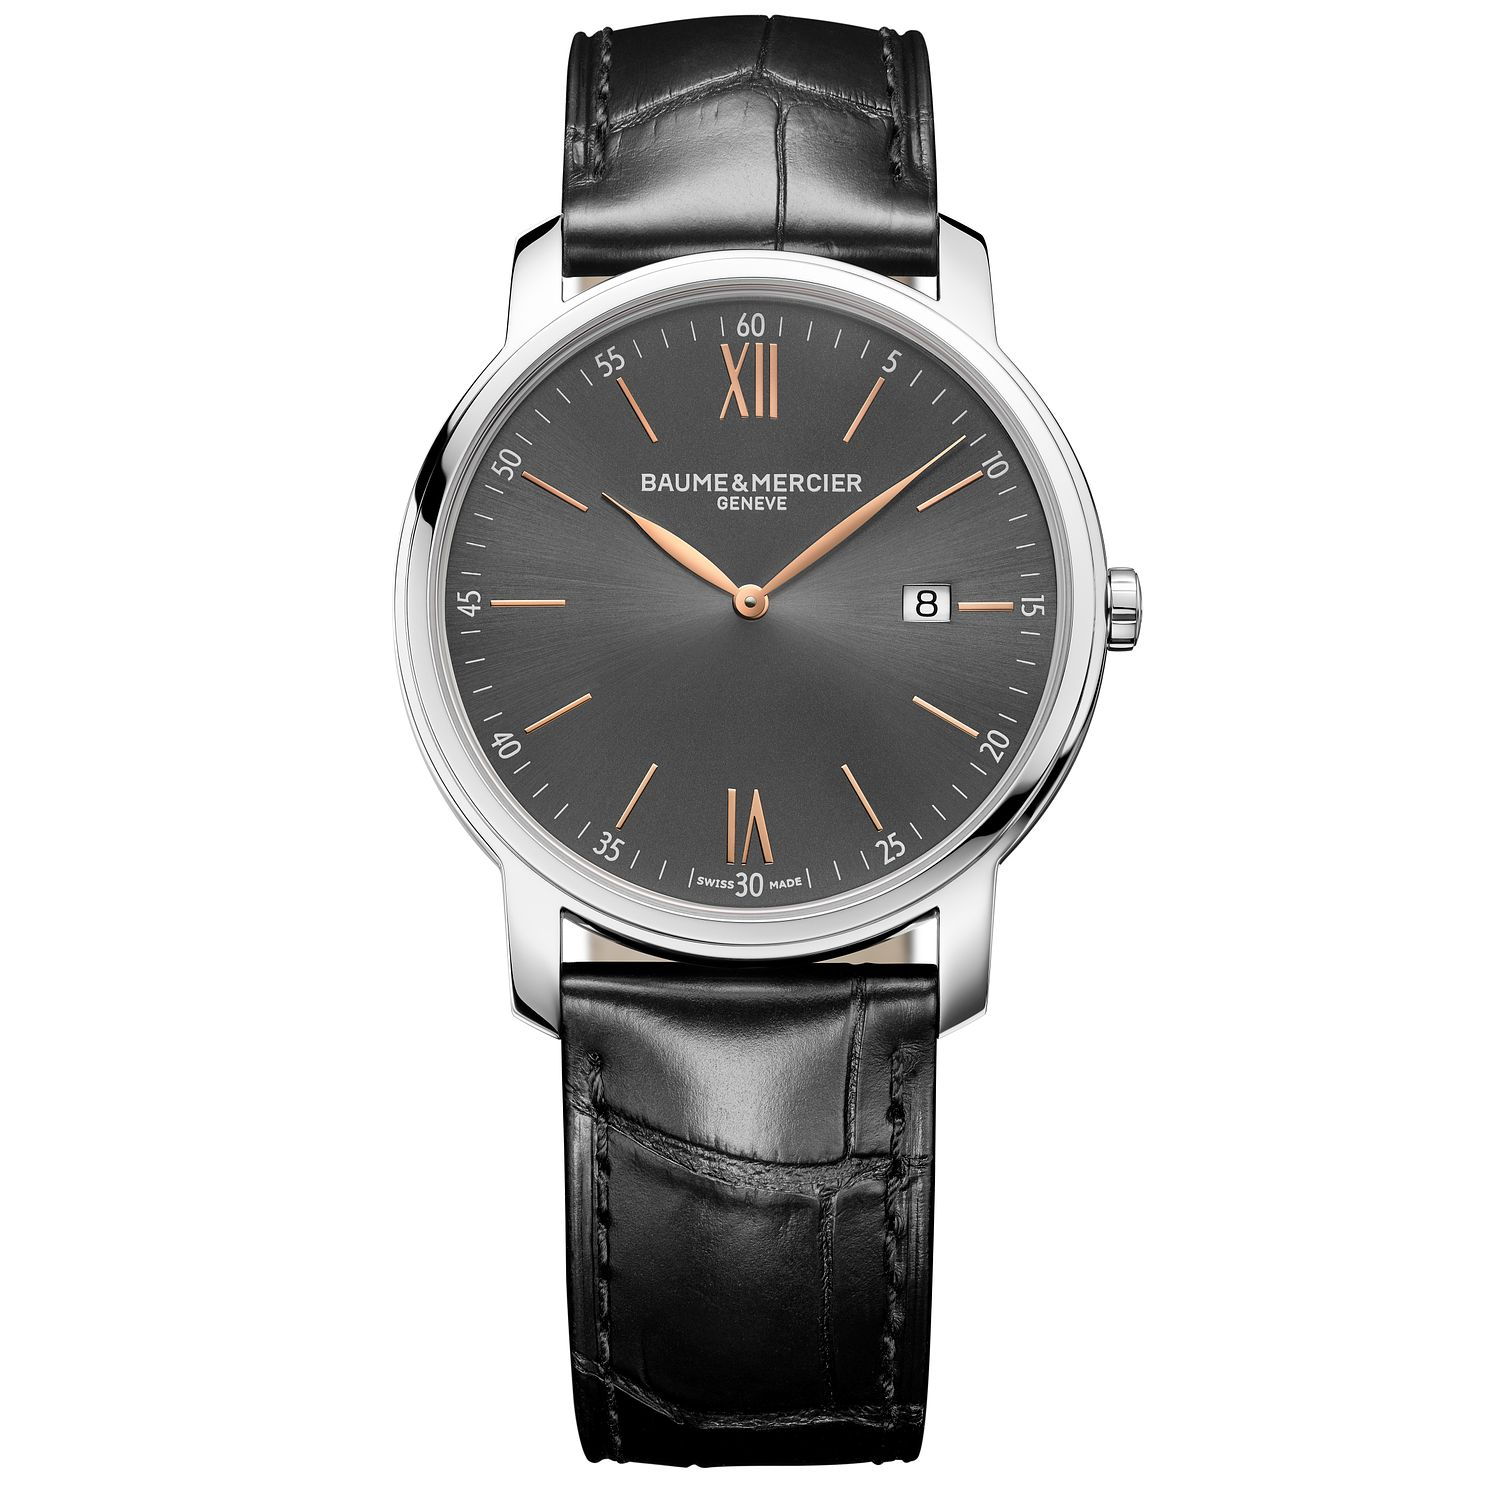 Baume & Mercier My Classima Men's Black Leather Strap Watch - Product number 6319211